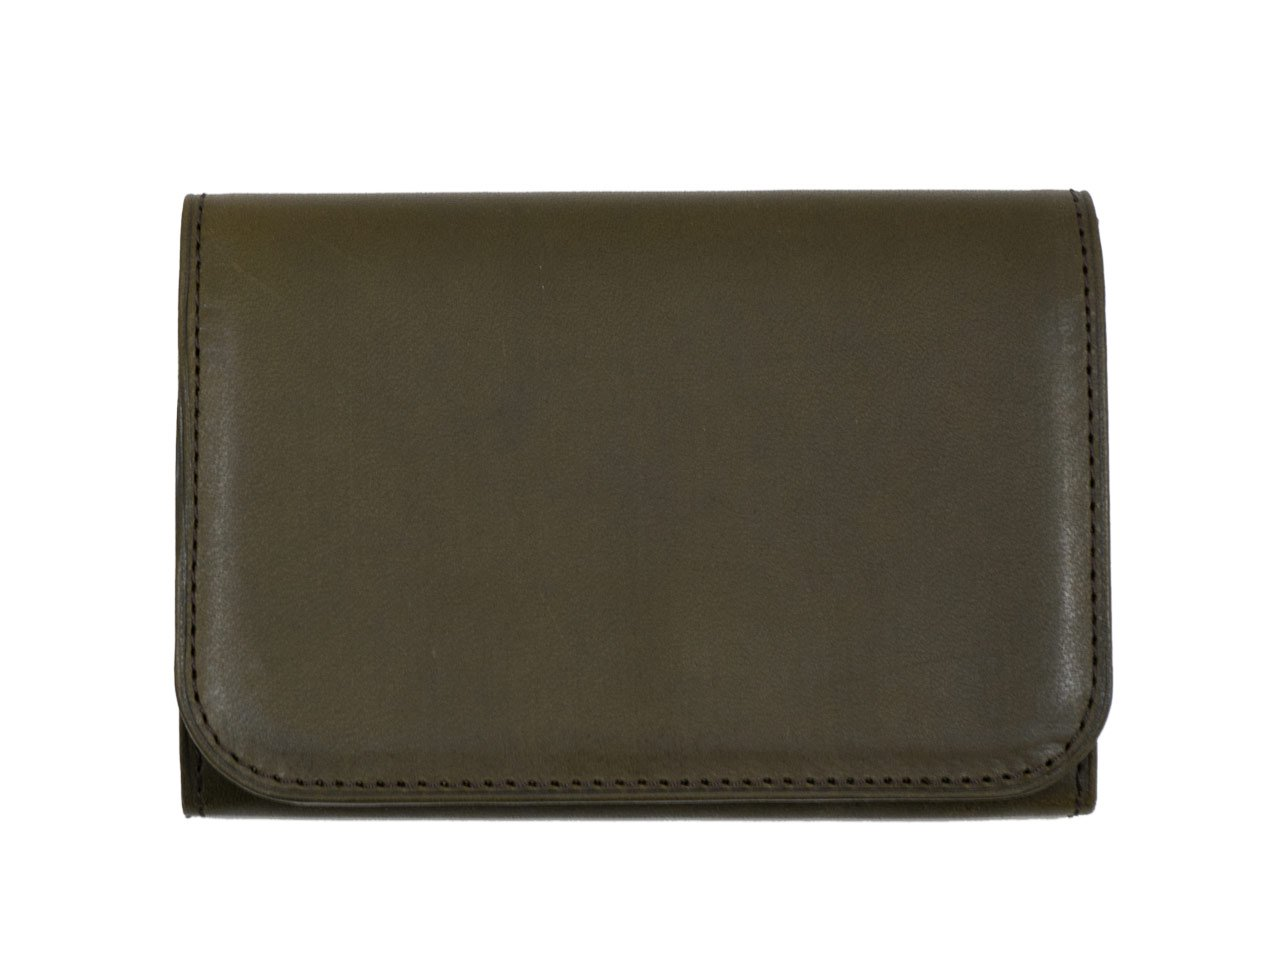 MARGARET HOWELL x PORTER OIL LEATHER CARD CASE 182OLIVE